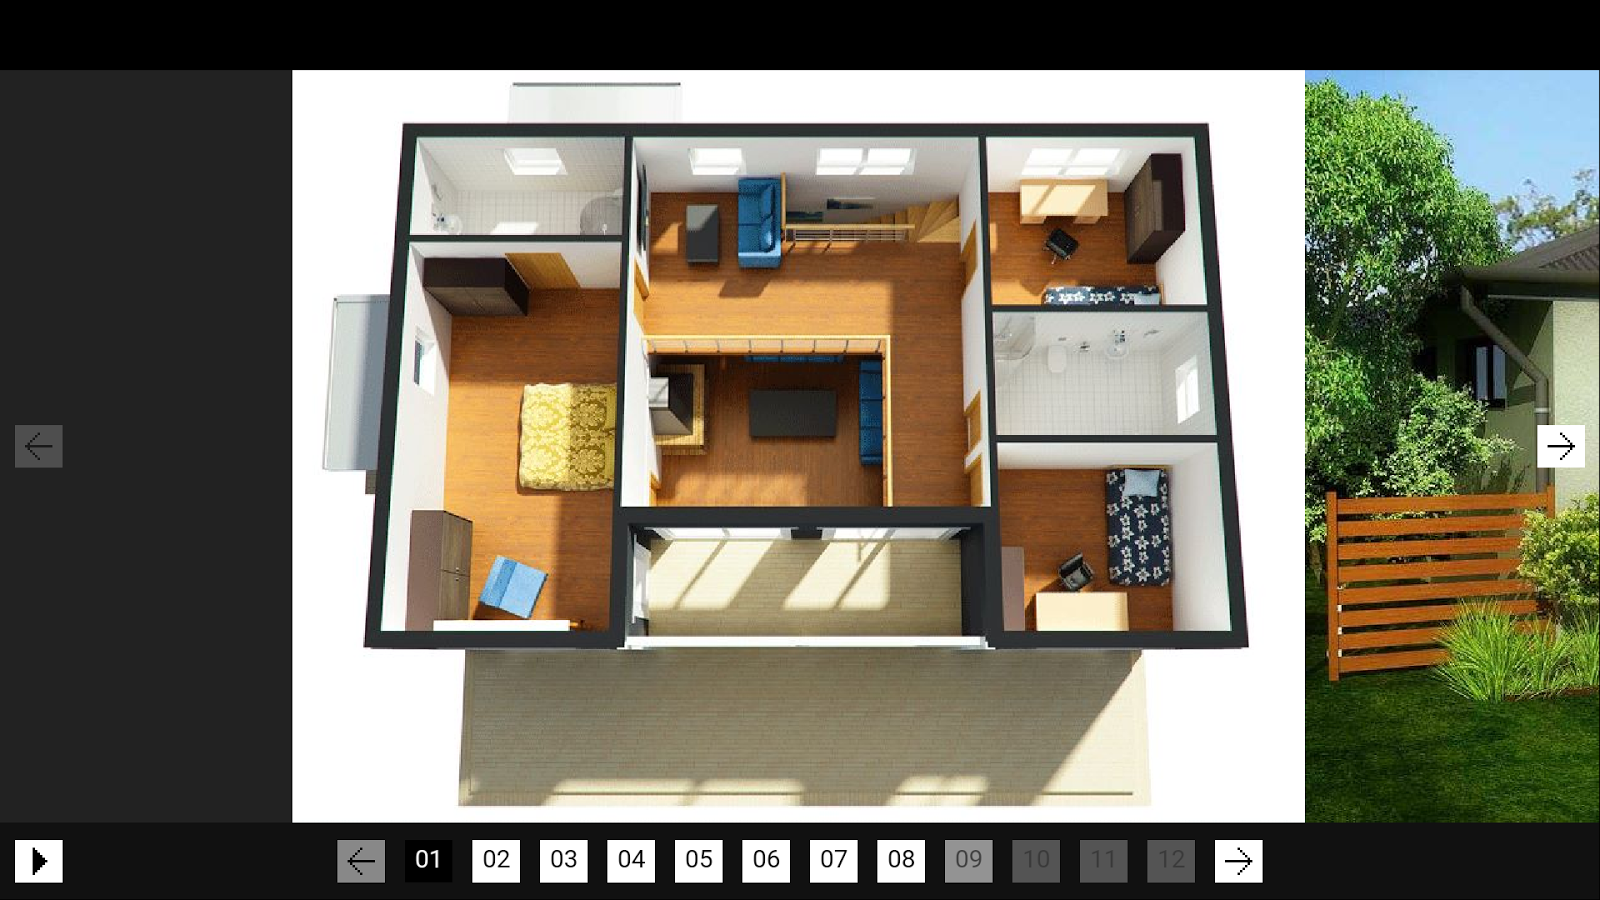 3d model home android apps on google play 3d model home screenshot malvernweather